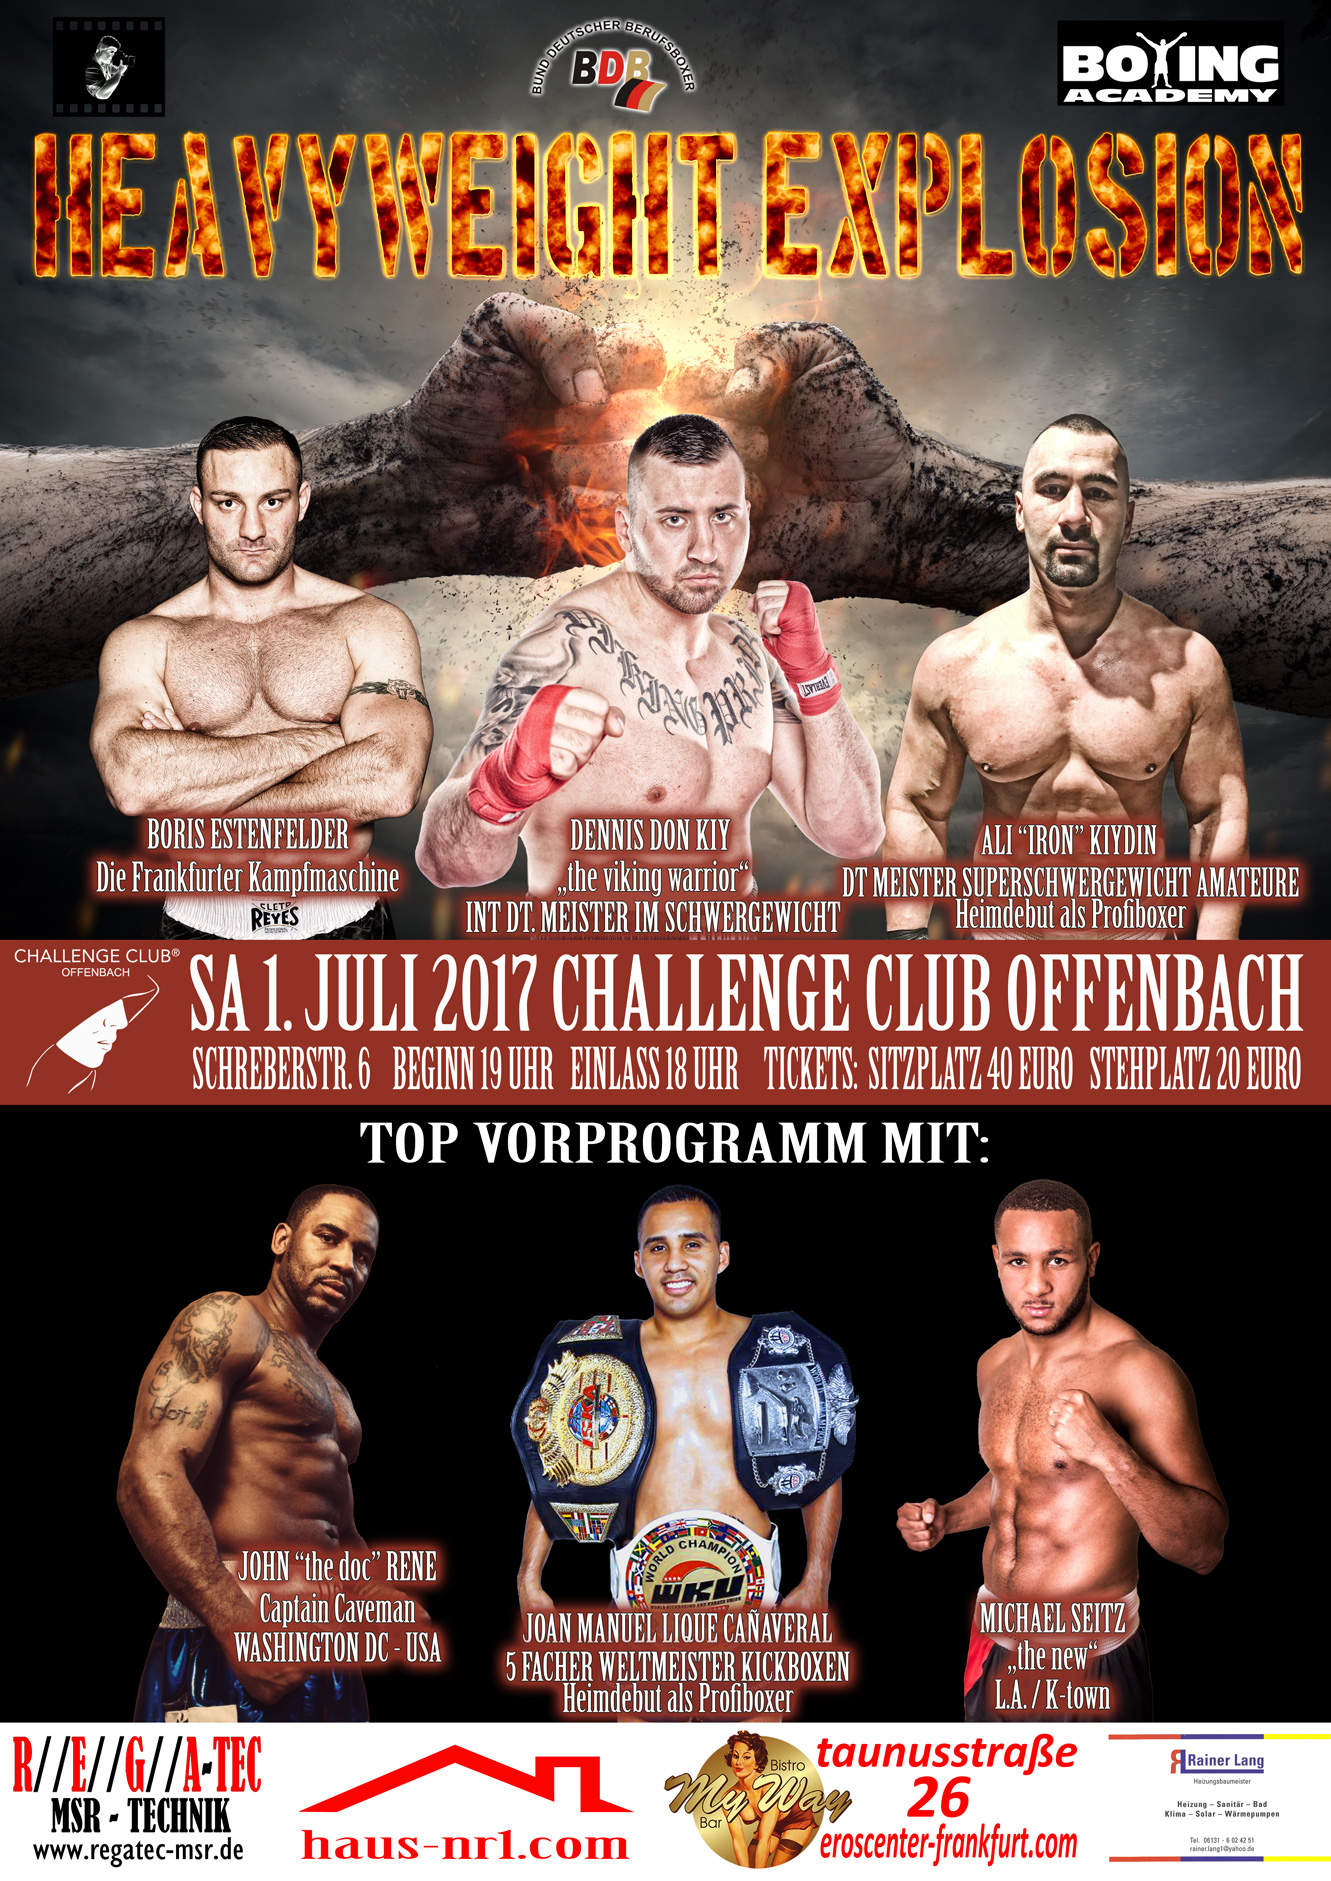 Challenge-Club-Offenbach-Heavyweight-Explosion-2017-Plakat-Web